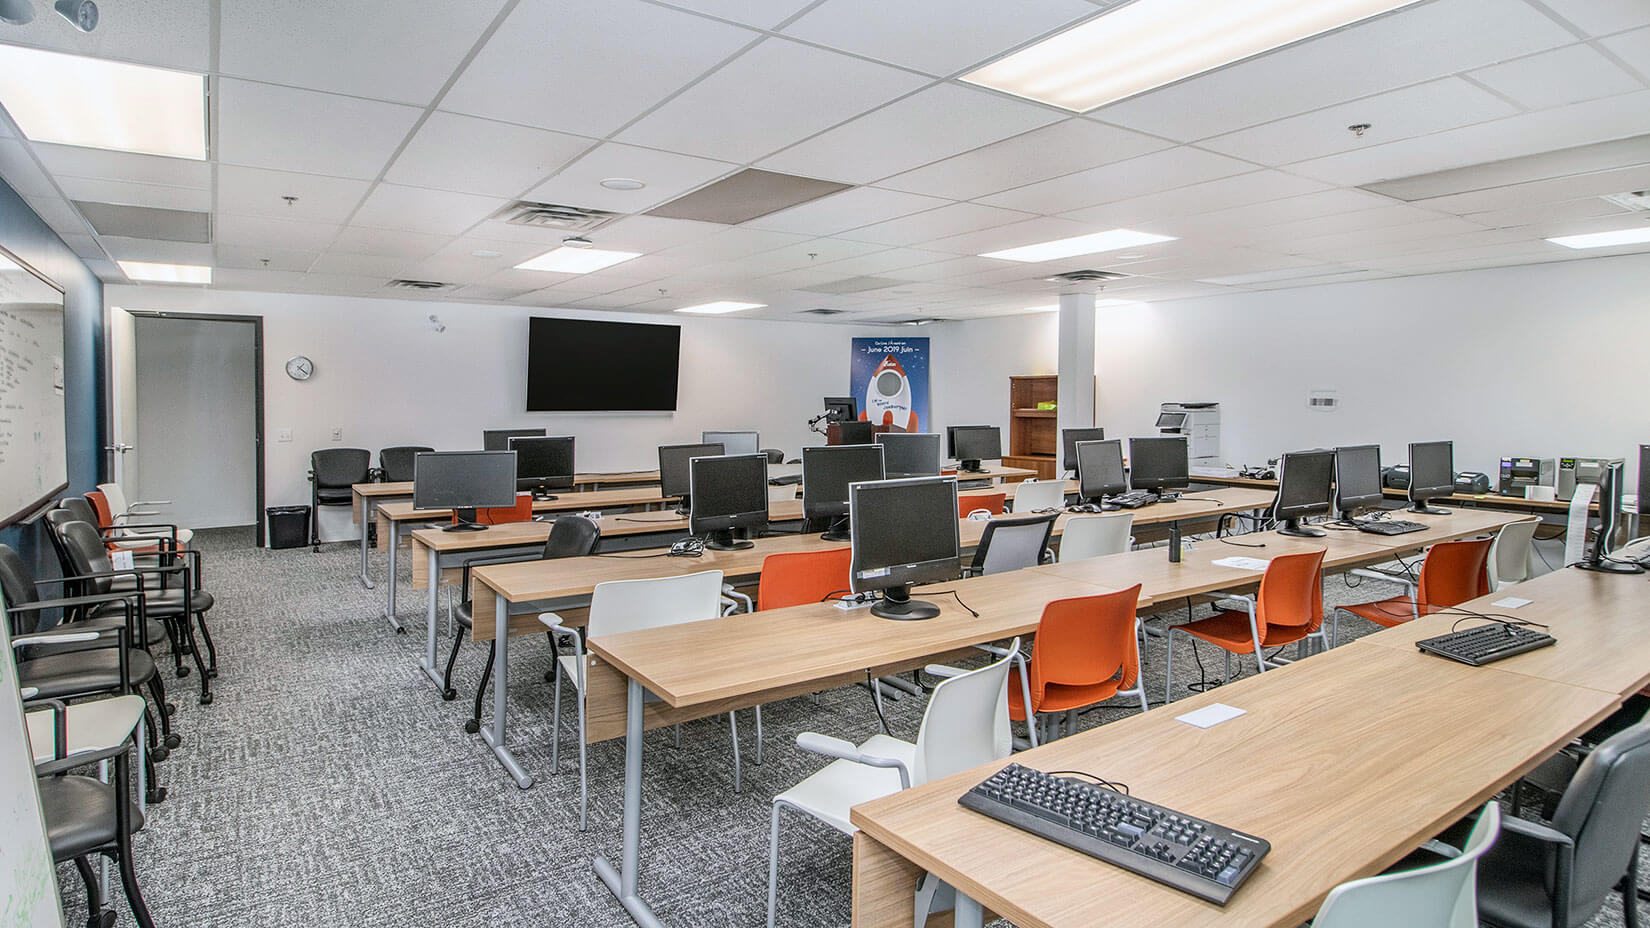 Classroom with row tables and computers